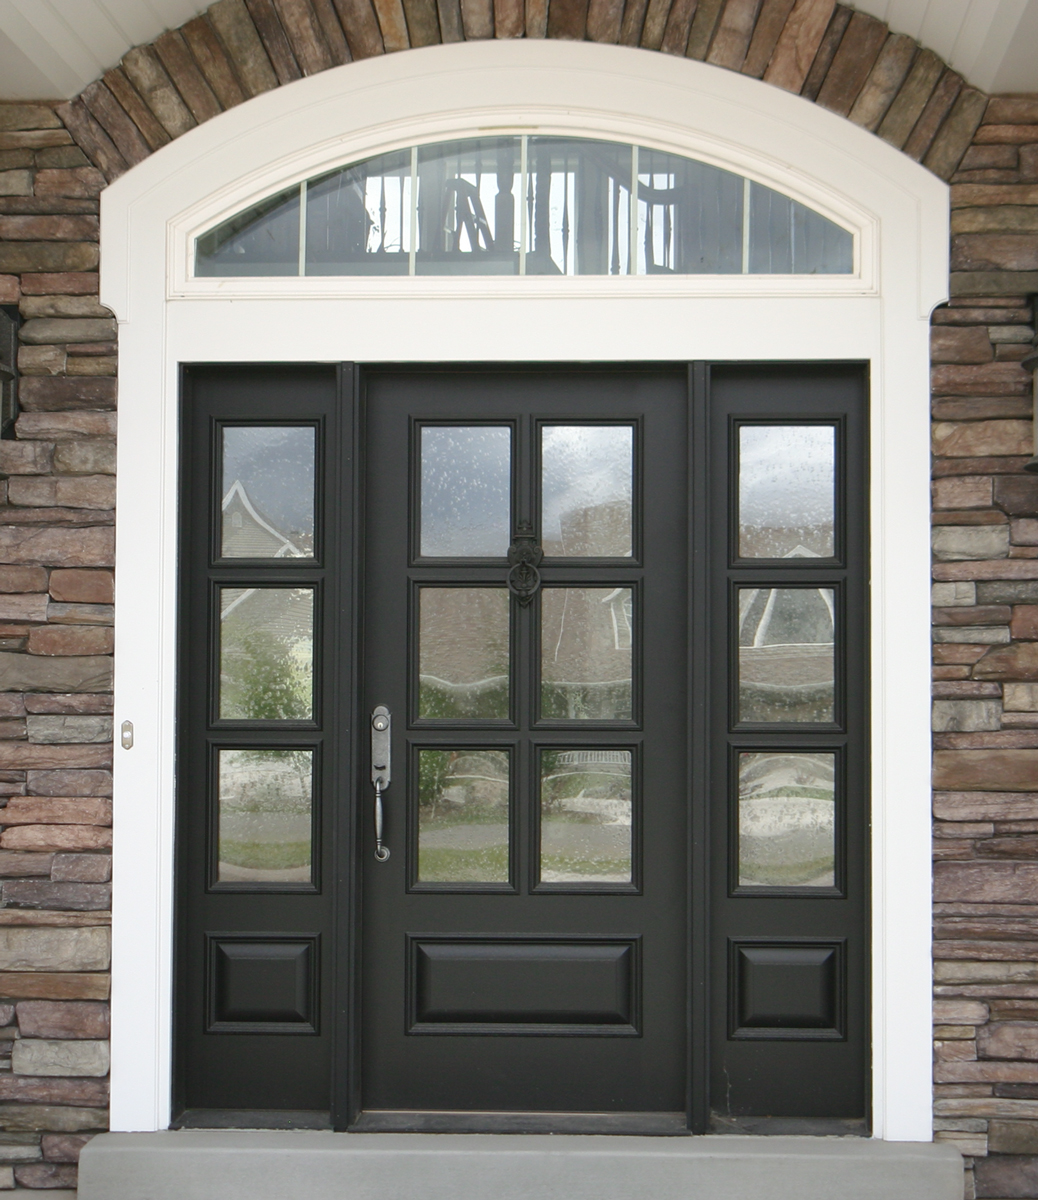 Old World Mill Utahu0027s leading supplier of custom shutters mouldings doors and more & Old World Mill: Utahu0027s leading supplier of custom shutters ...